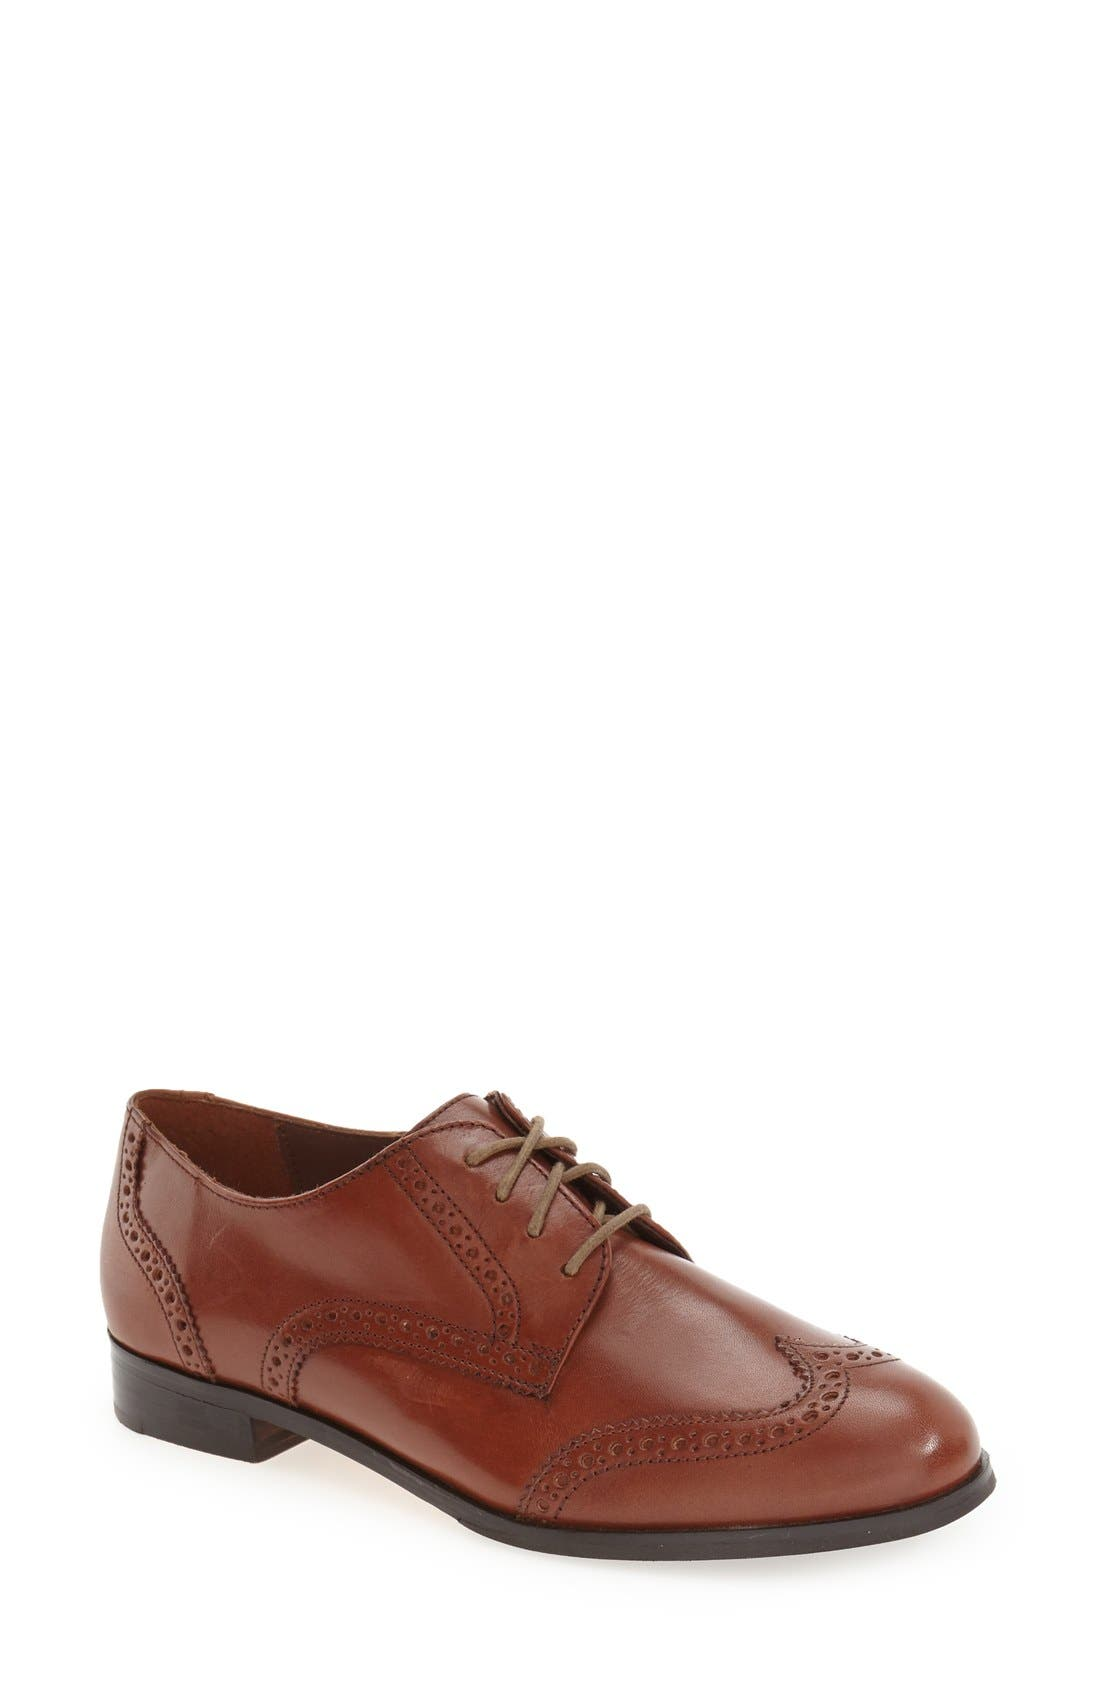 Alternate Image 1 Selected - Cole Haan Grand.OS Oxford (Women)